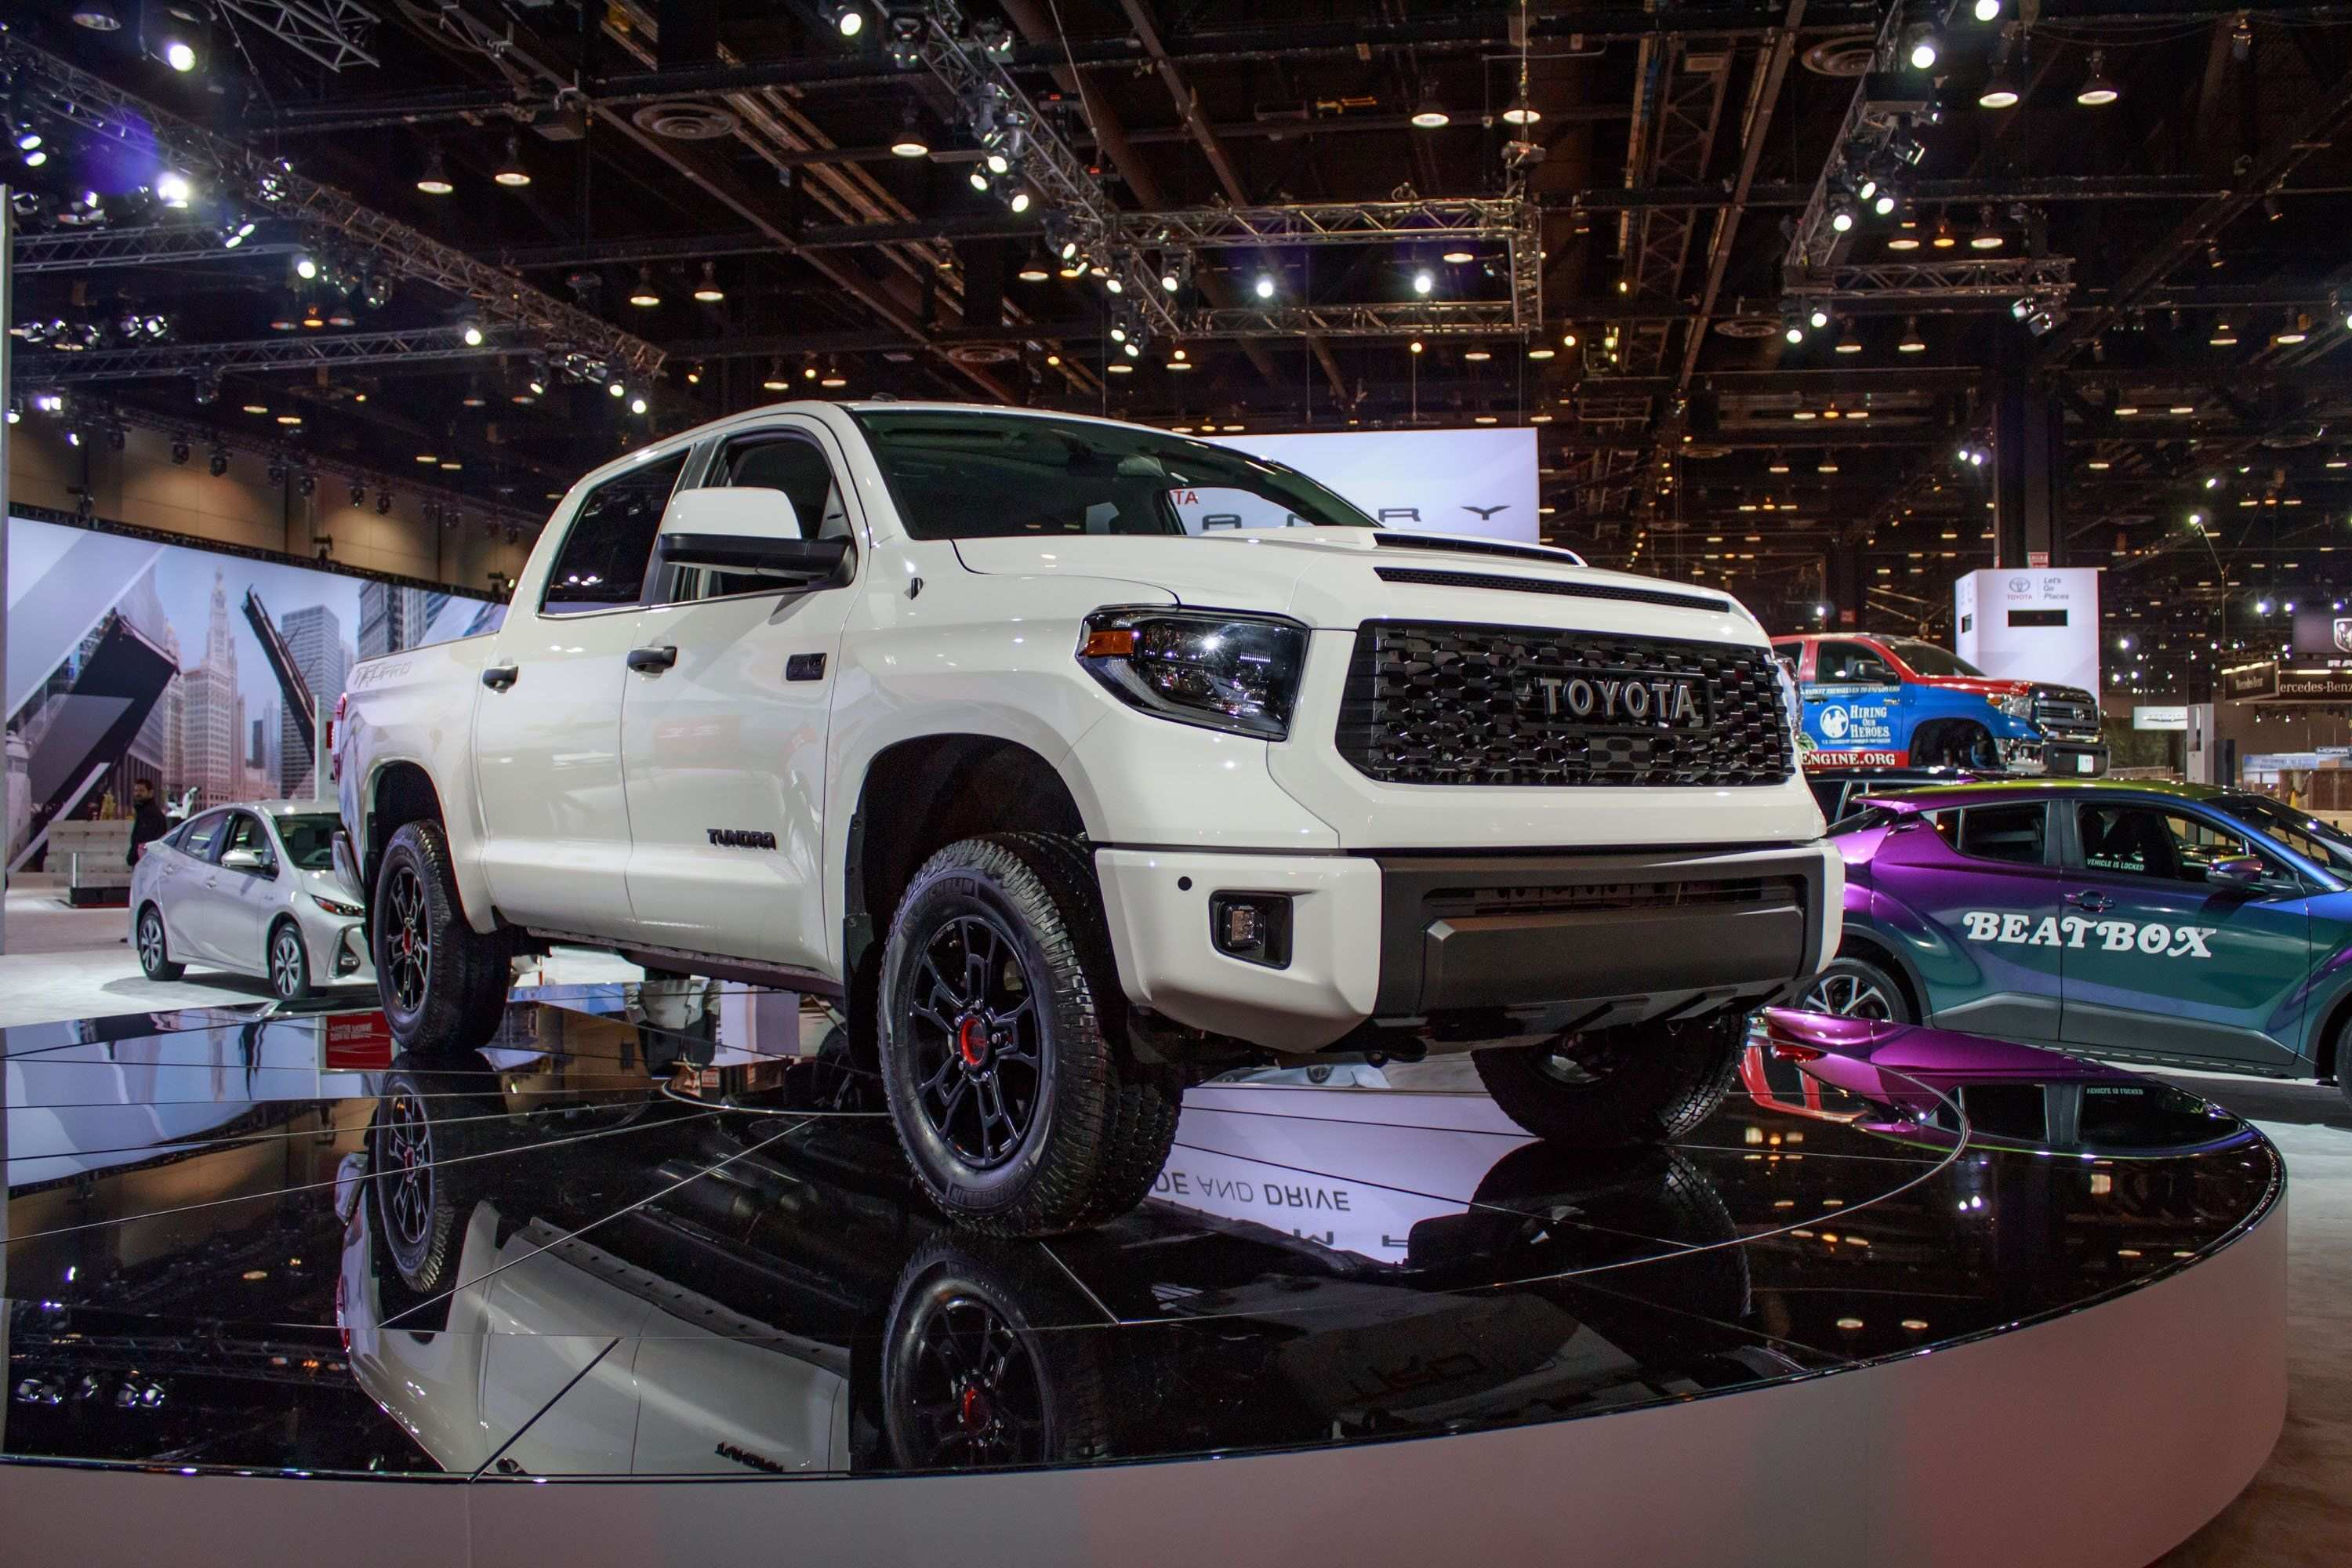 75 The Best Toyota Off Road Vehicle 2019 Specs And Review Spesification with Best Toyota Off Road Vehicle 2019 Specs And Review